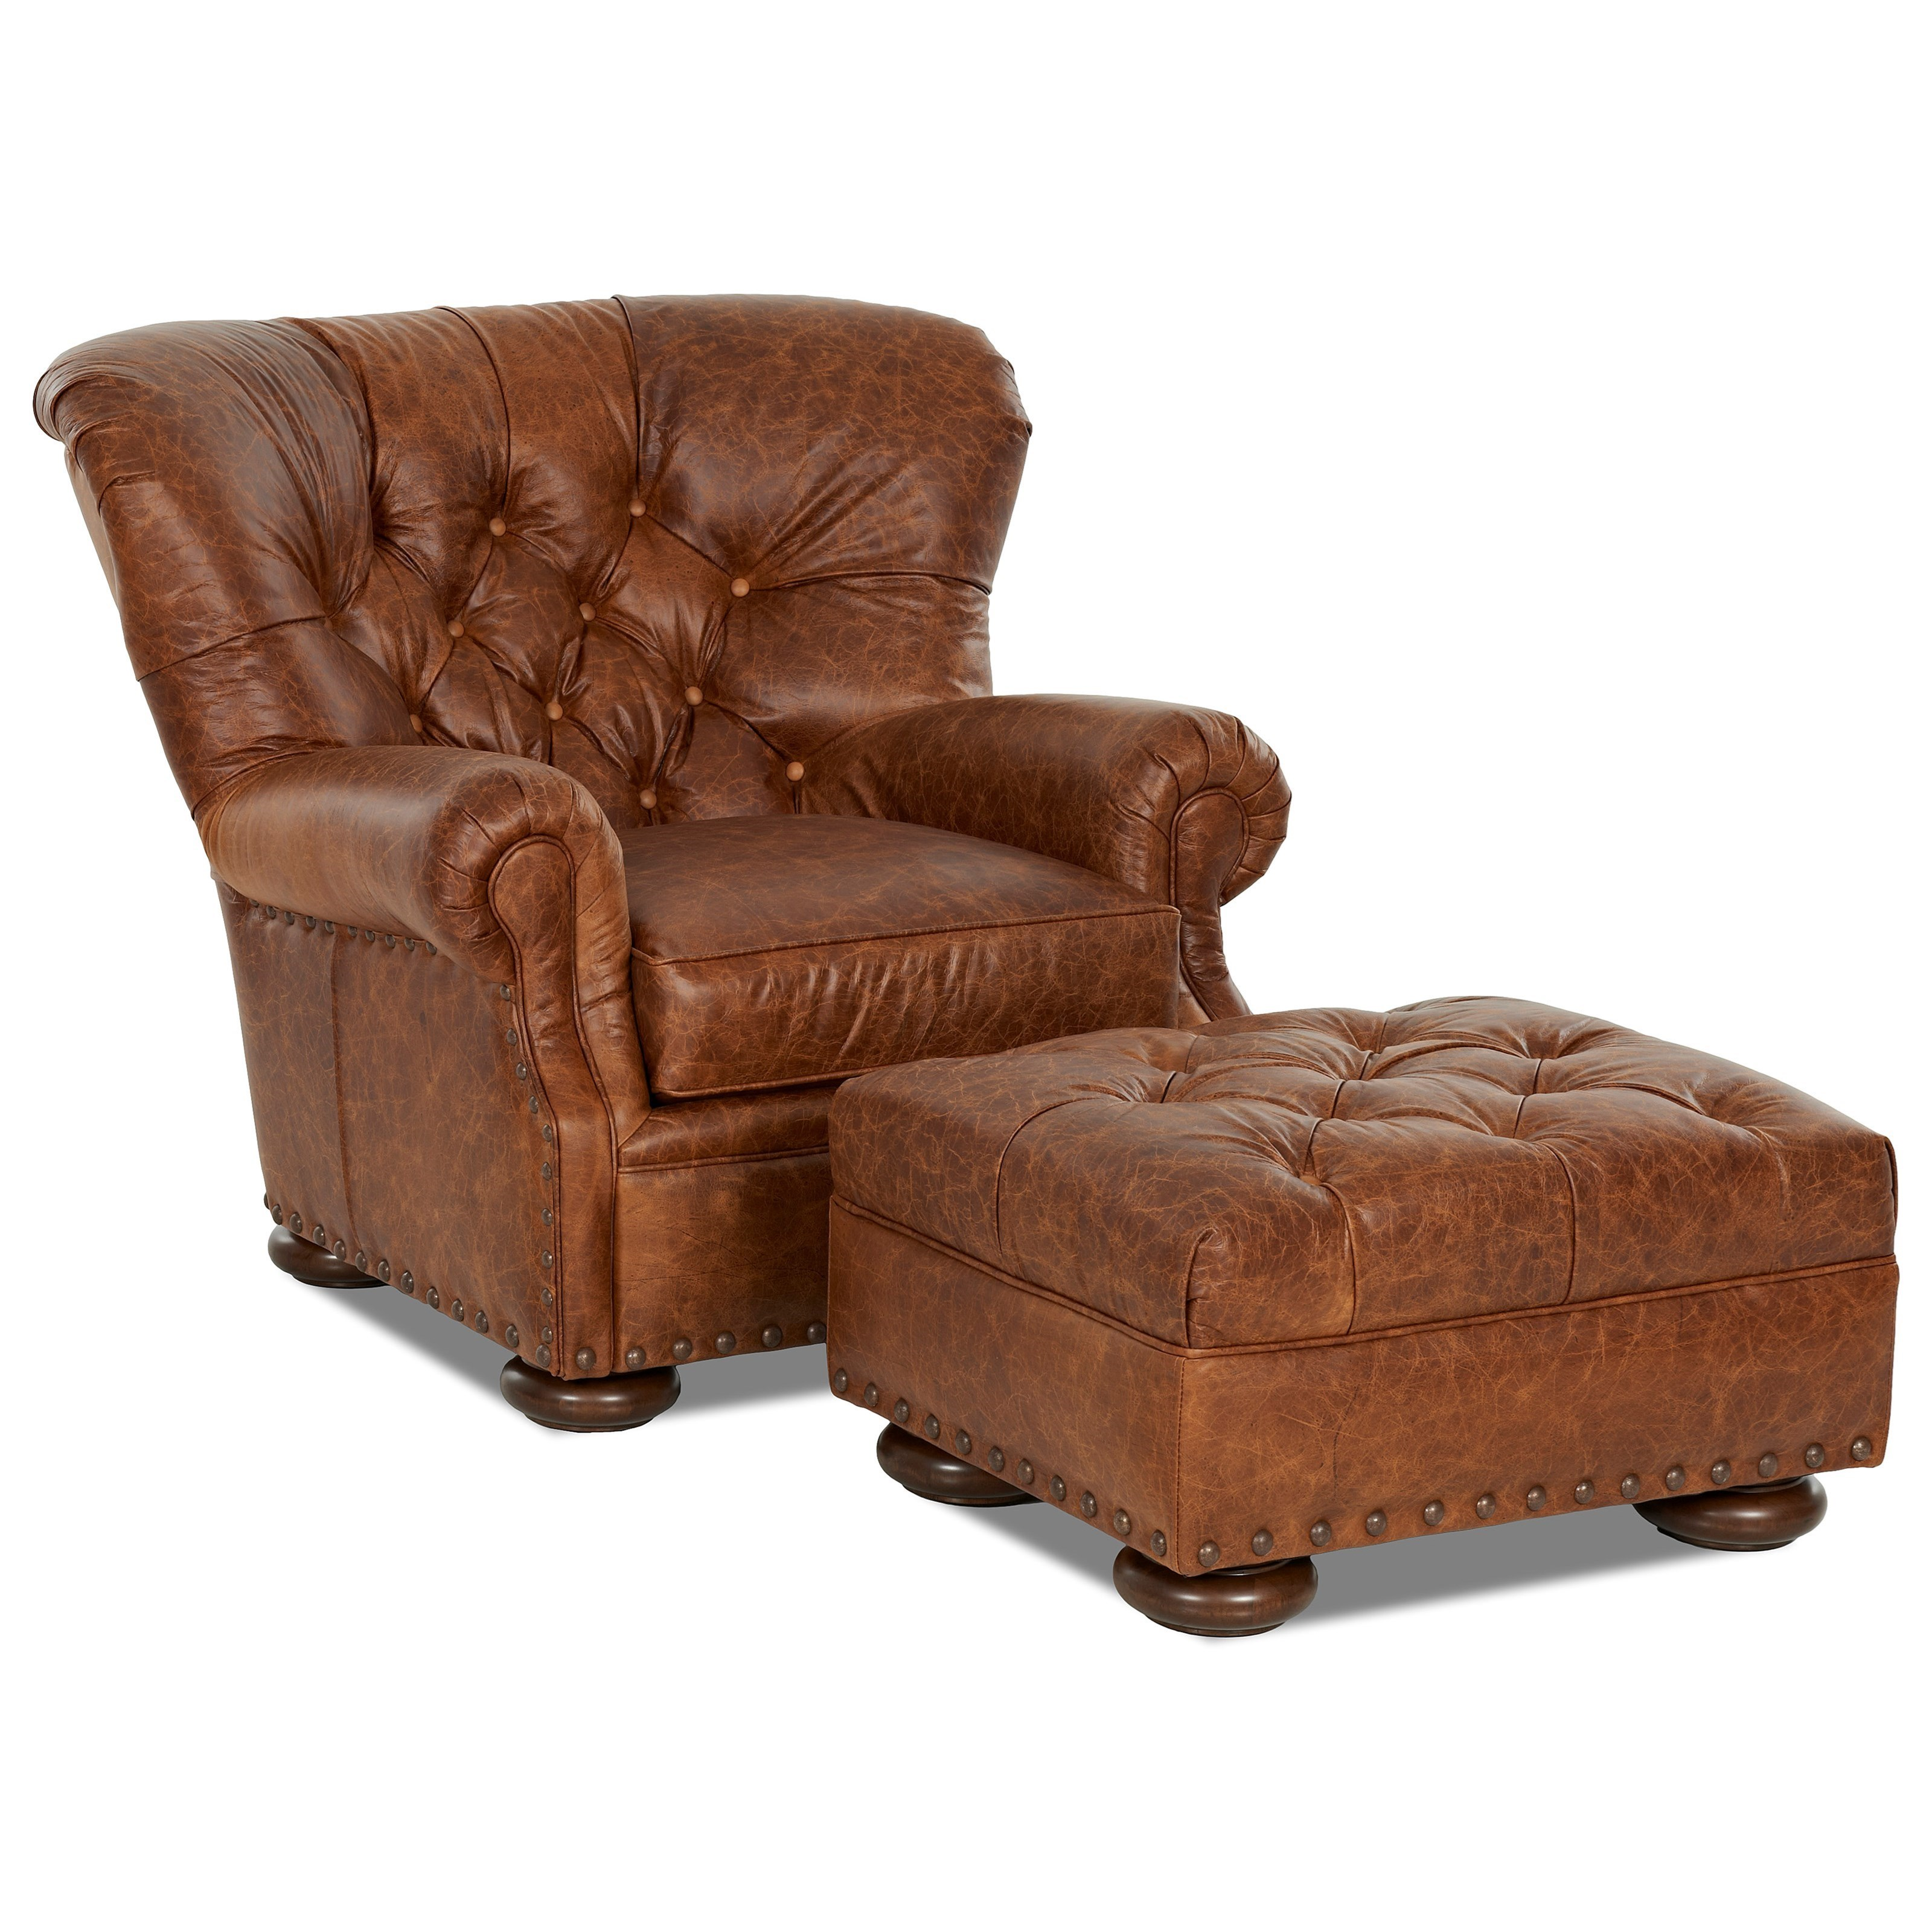 Klaussner Aspen Tufted Leather Chair and Ottoman Set ...